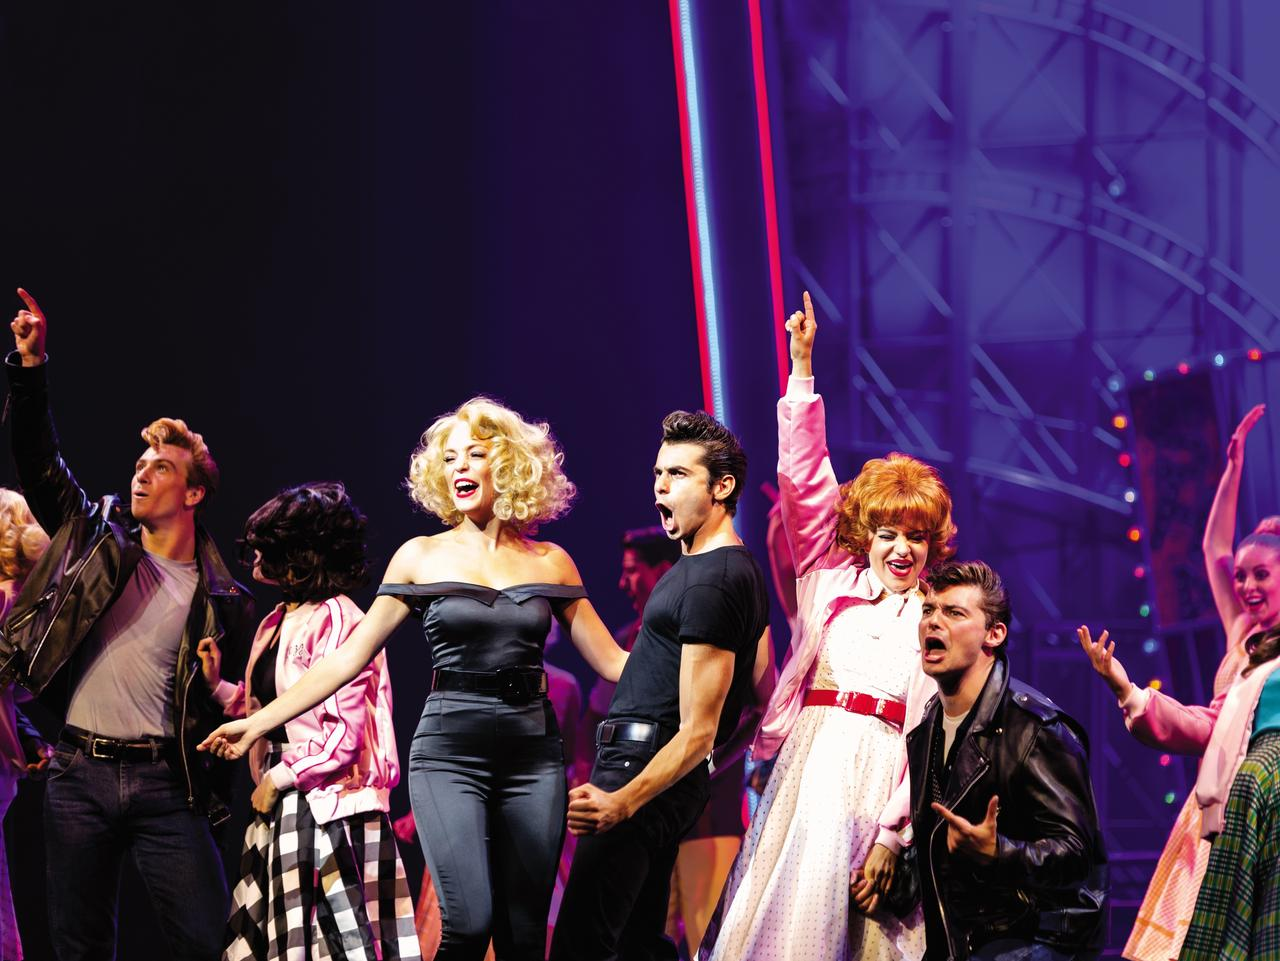 ESCAPE: Cruise cover story, Christine Retschlag, Oct 1 - HM, Harmony of the Seas, Broadway show, Grease, actors, acting, stage, theater, theatre, singing, singers, drama, costumes, dancers, performer, performance. Picture: Supplied/Royal Caribbean